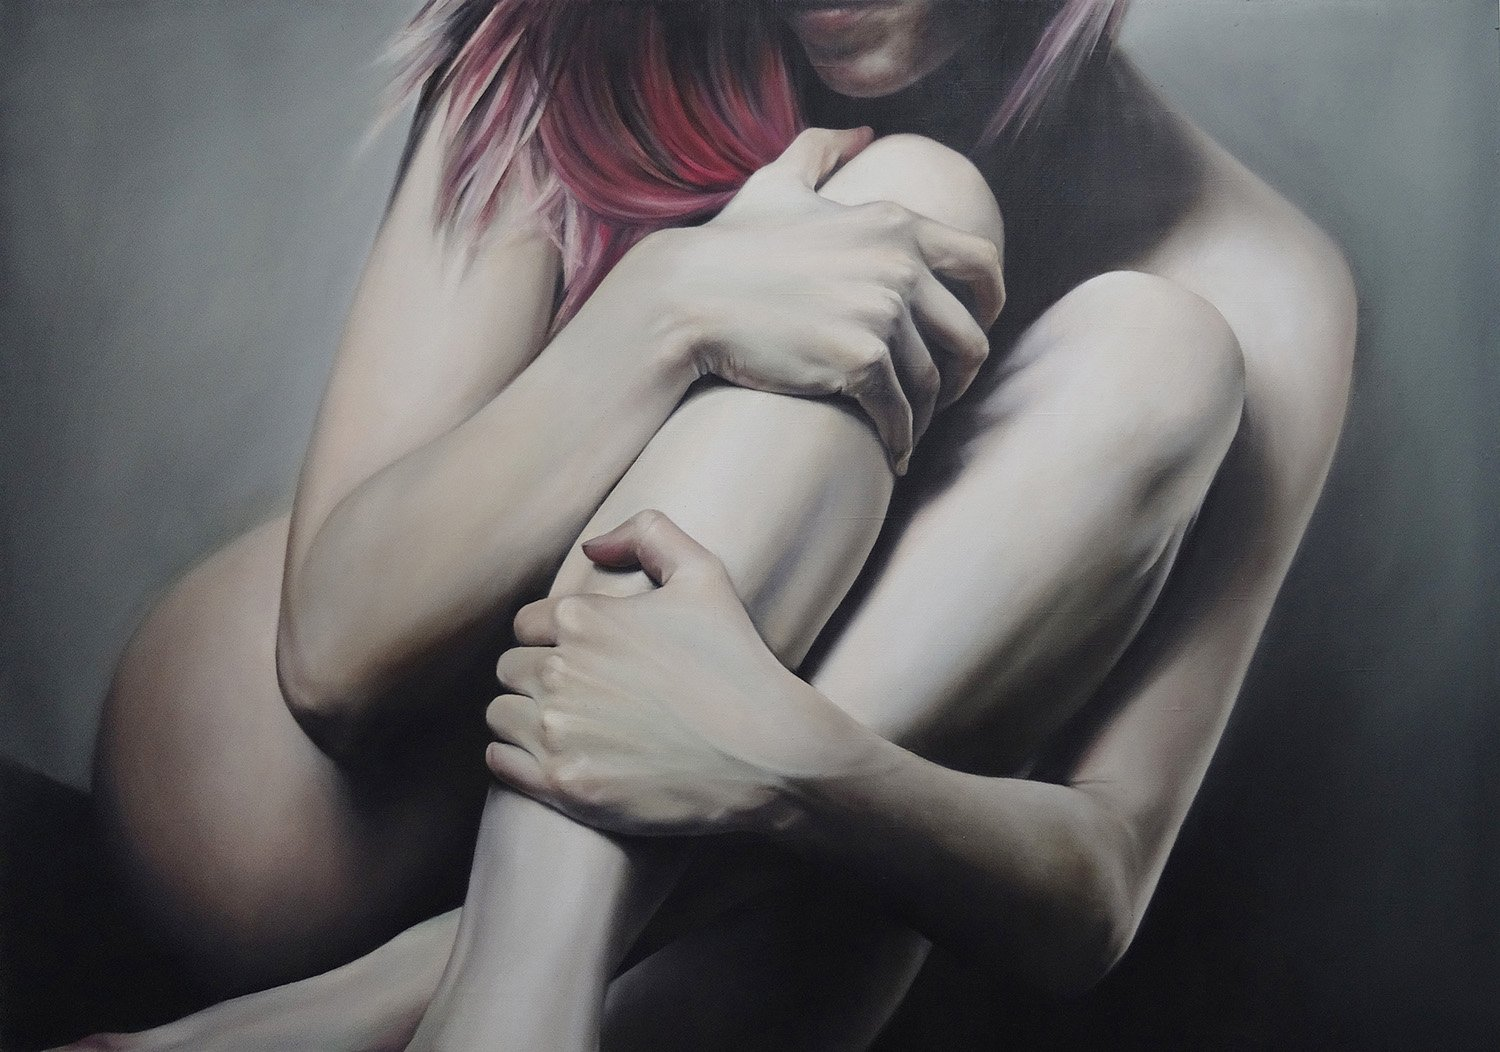 eating disorder, anorexia, Oil/canvas, 100x70, 2014, painting by yanina viland